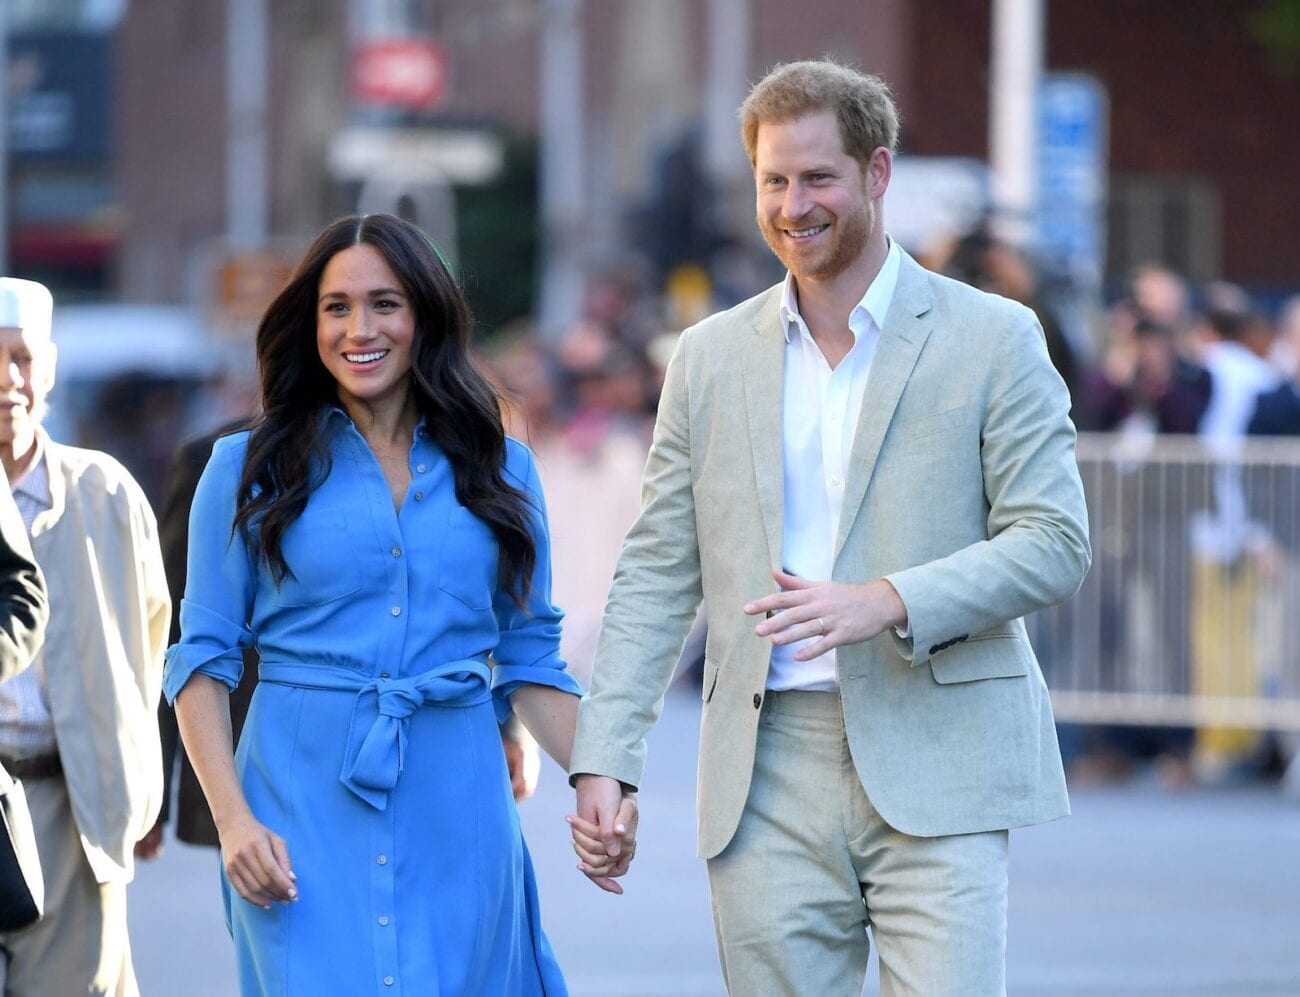 Can you believe it's been a year since Megxit? See what Prince Harry and Meghan Markle have been up to since they left royal life behind.